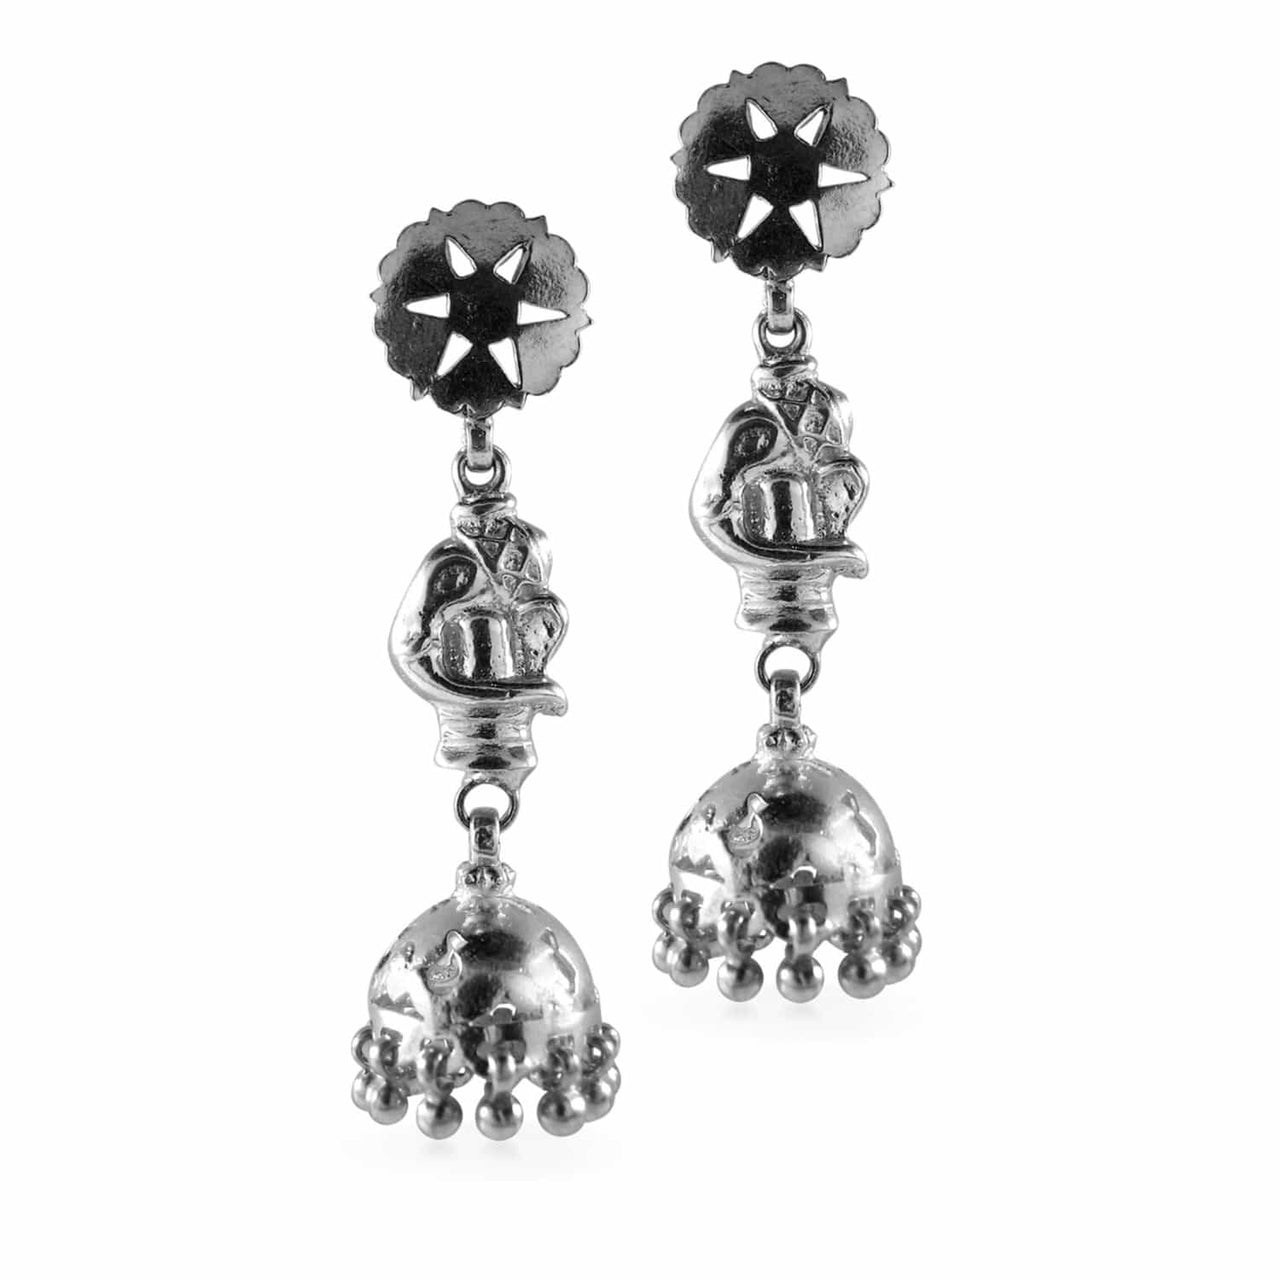 Jaipur Atelier Silver Elephant Chandeliers